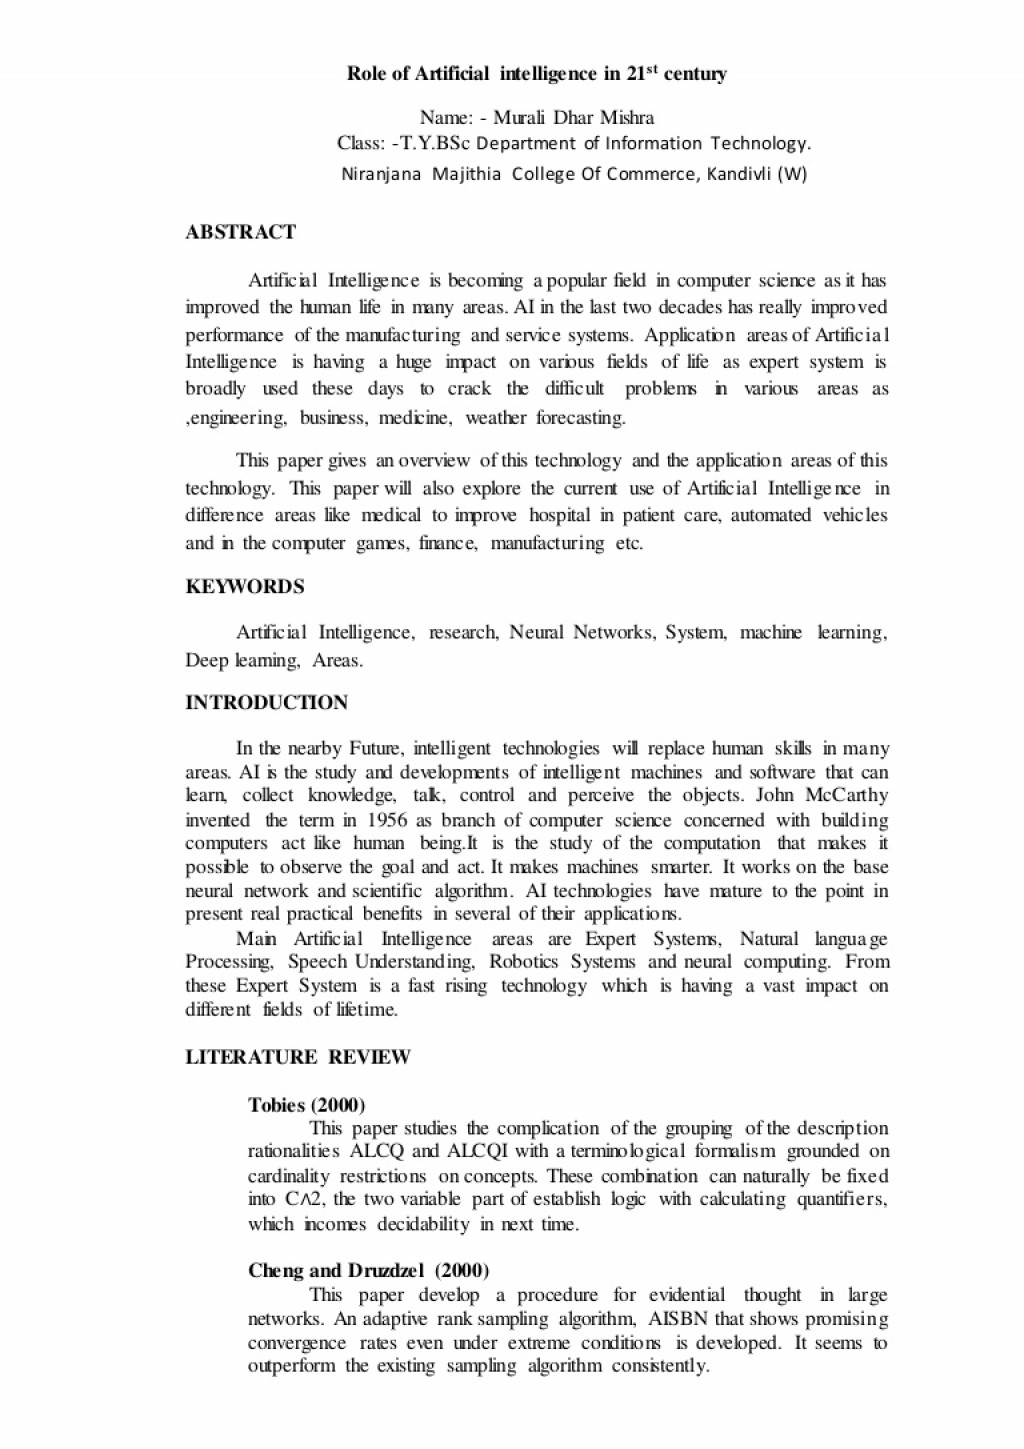 011 Artificial Intelligence Research Papers Paper Roleofartificialintelligencein21stcentury Thumbnail Unique 2017 Ideas Large